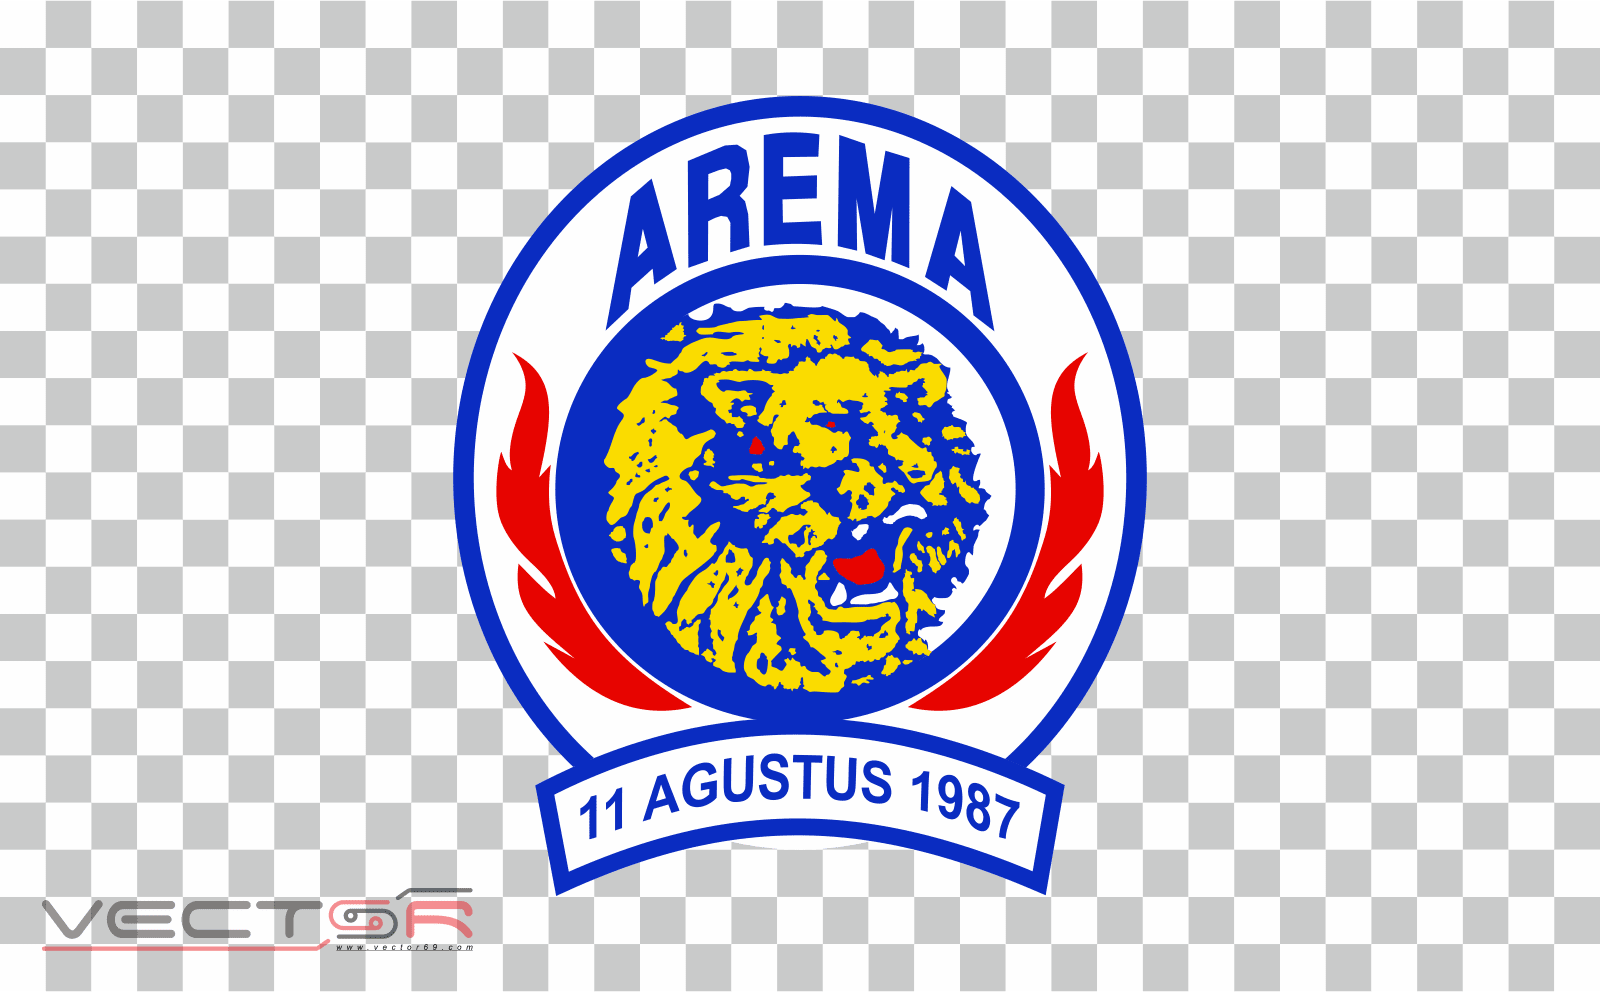 Arema Indonesia (1996) Logo - Download .PNG (Portable Network Graphics) Transparent Images